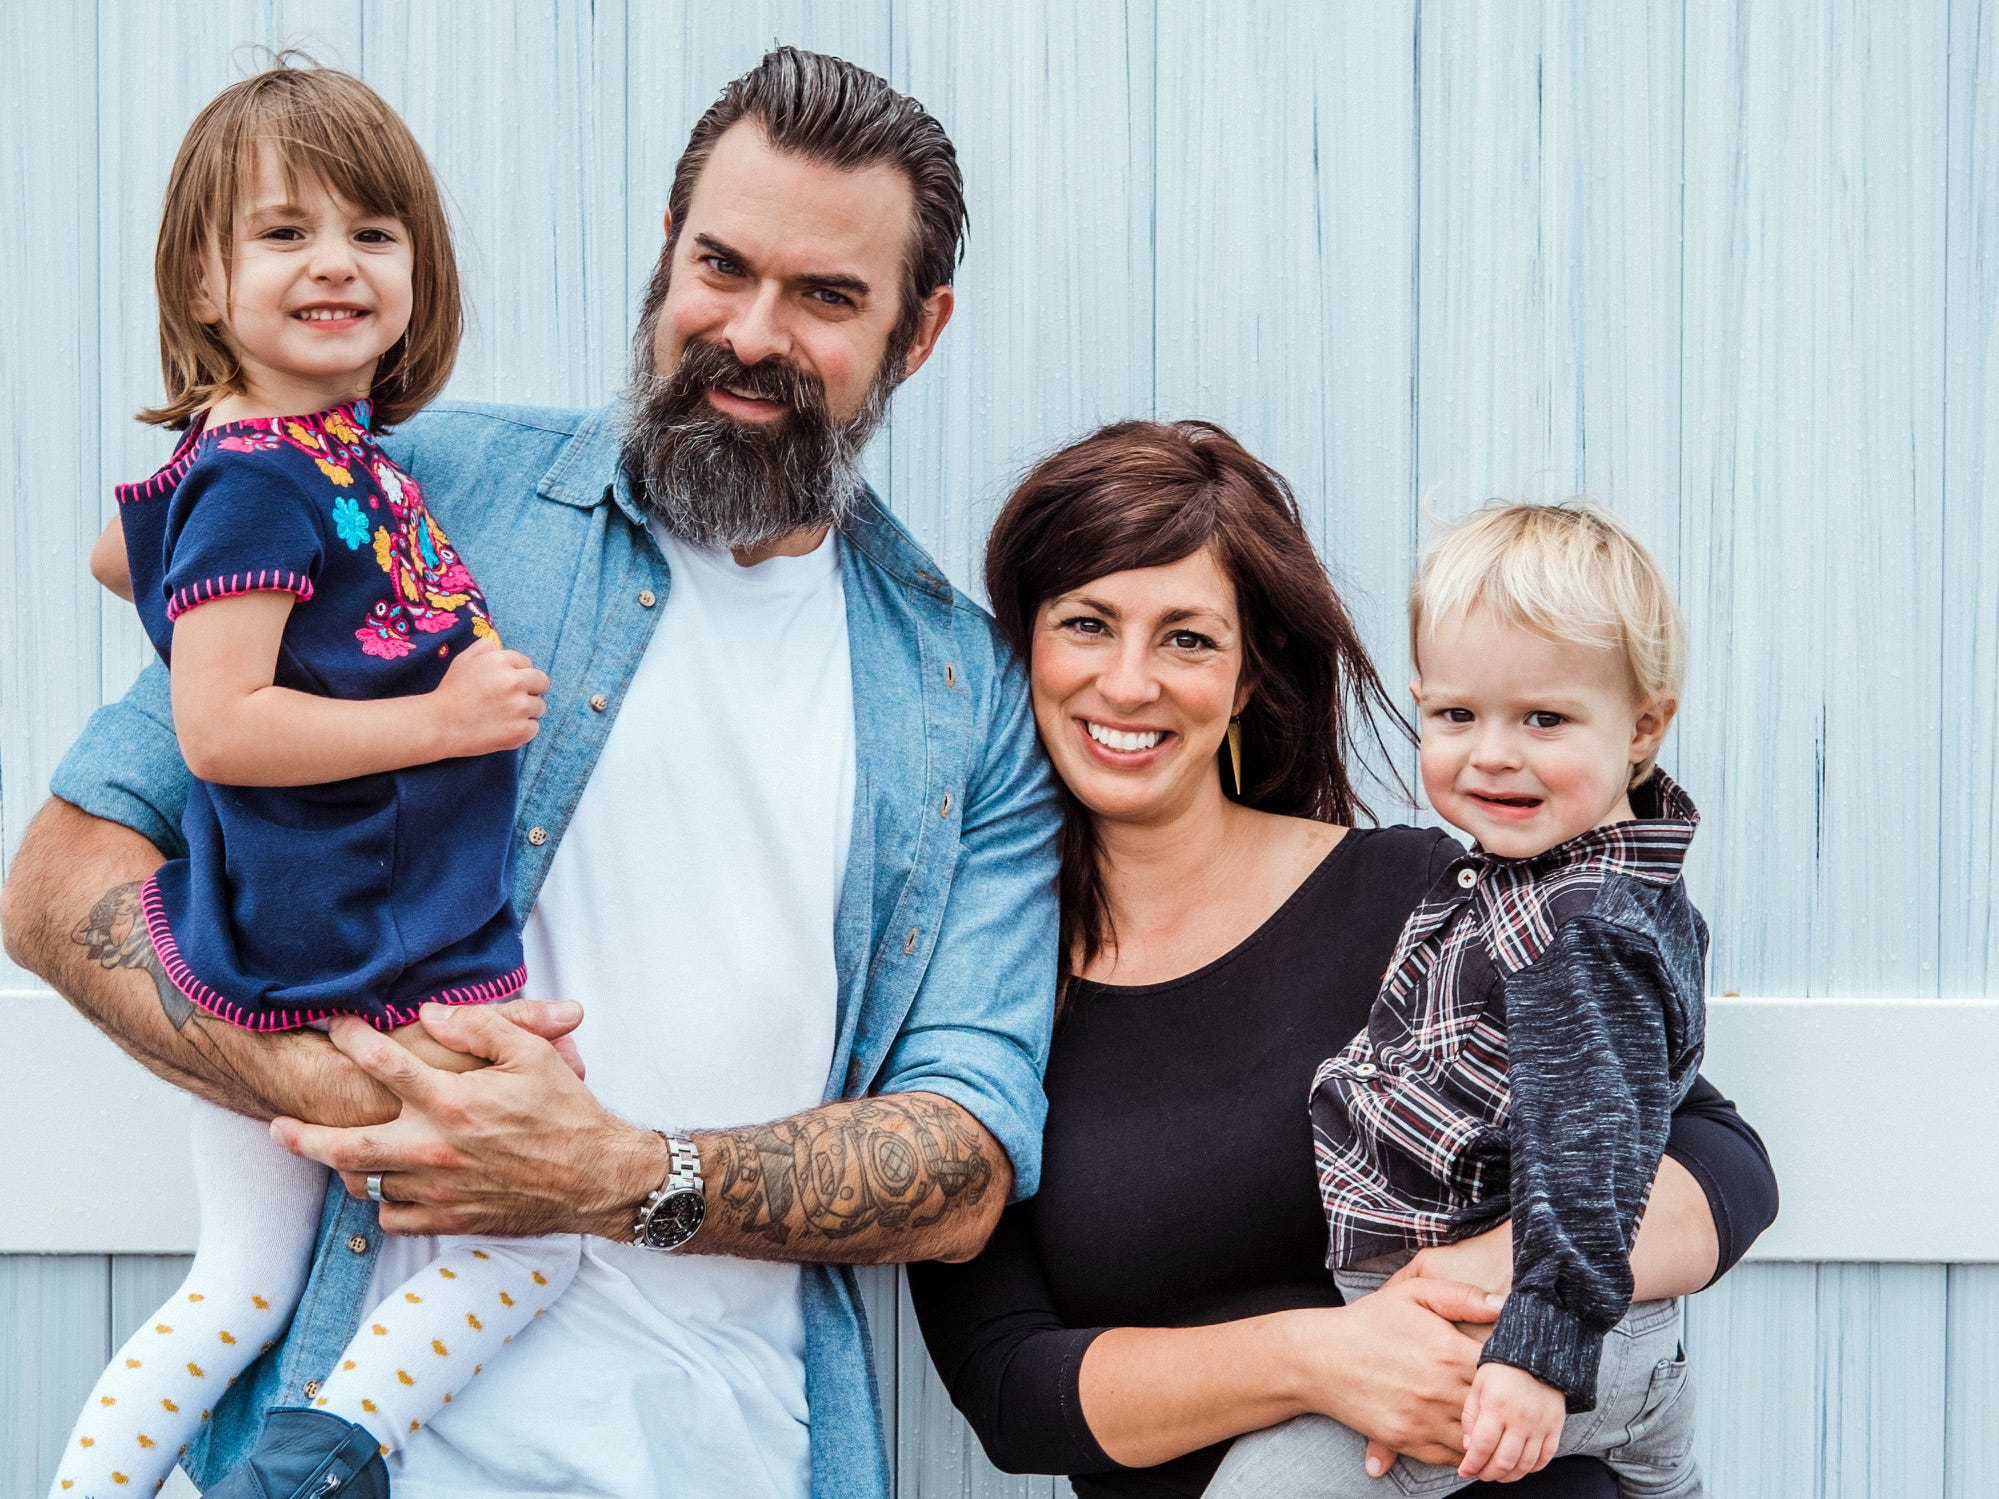 The family: Krysta Hutton with husband Chris, daughter Ruby and son Rex.